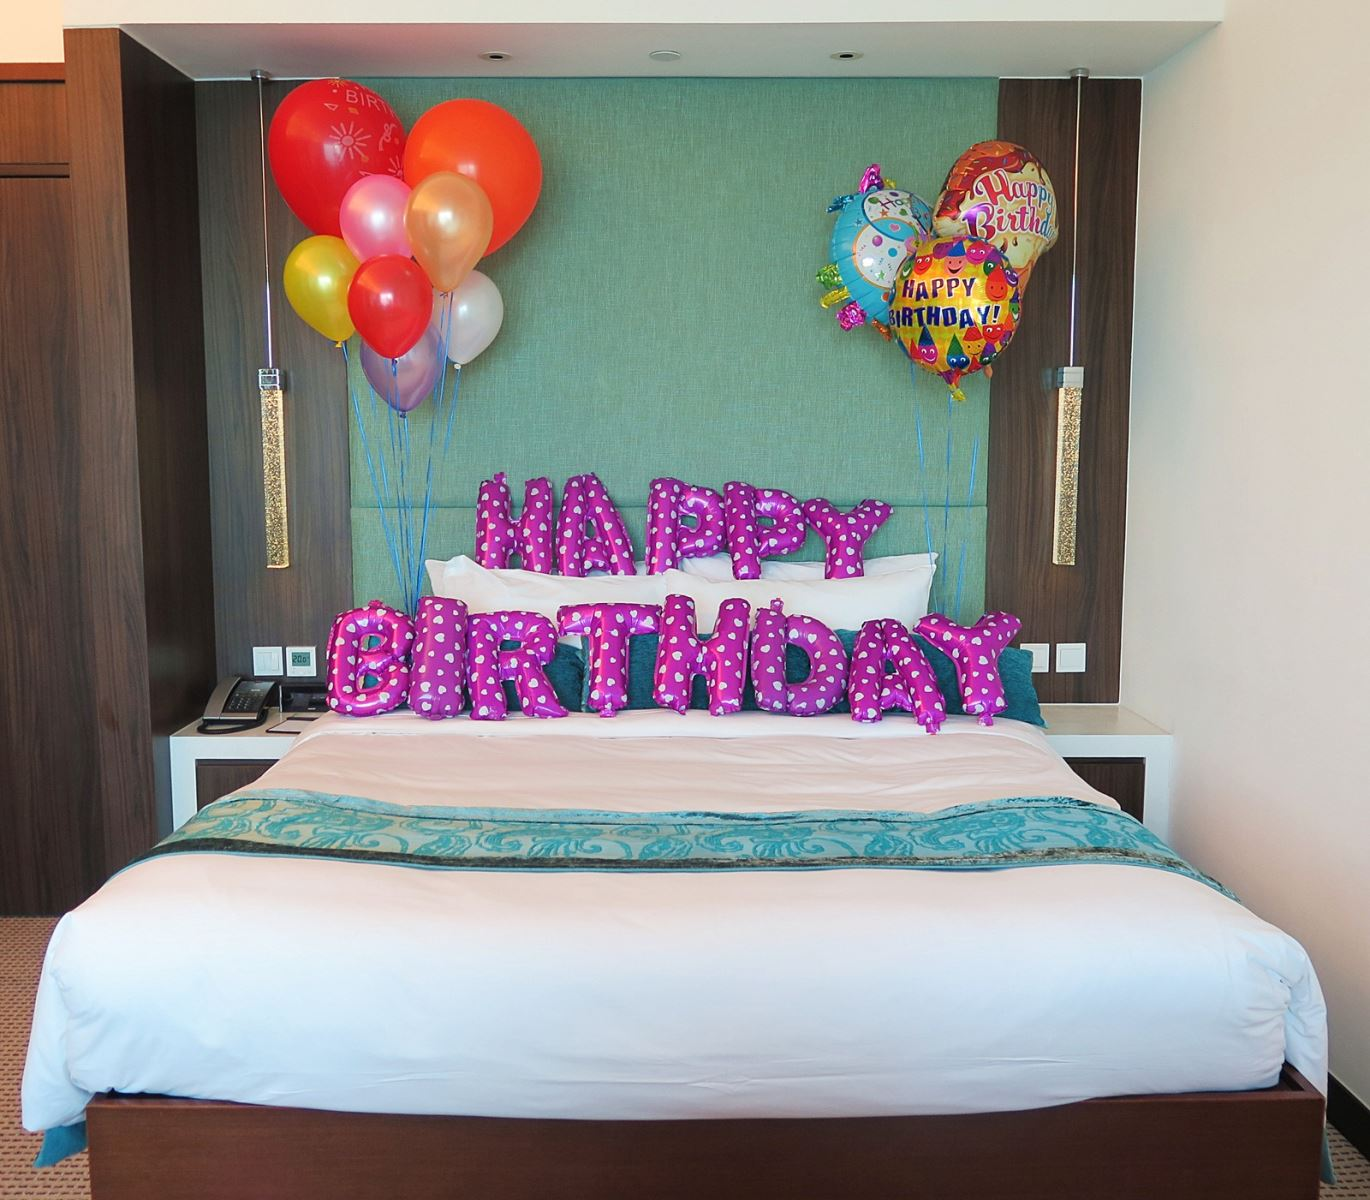 7 Unique Ways To Surprise Your Loved Ones On Their Birthday